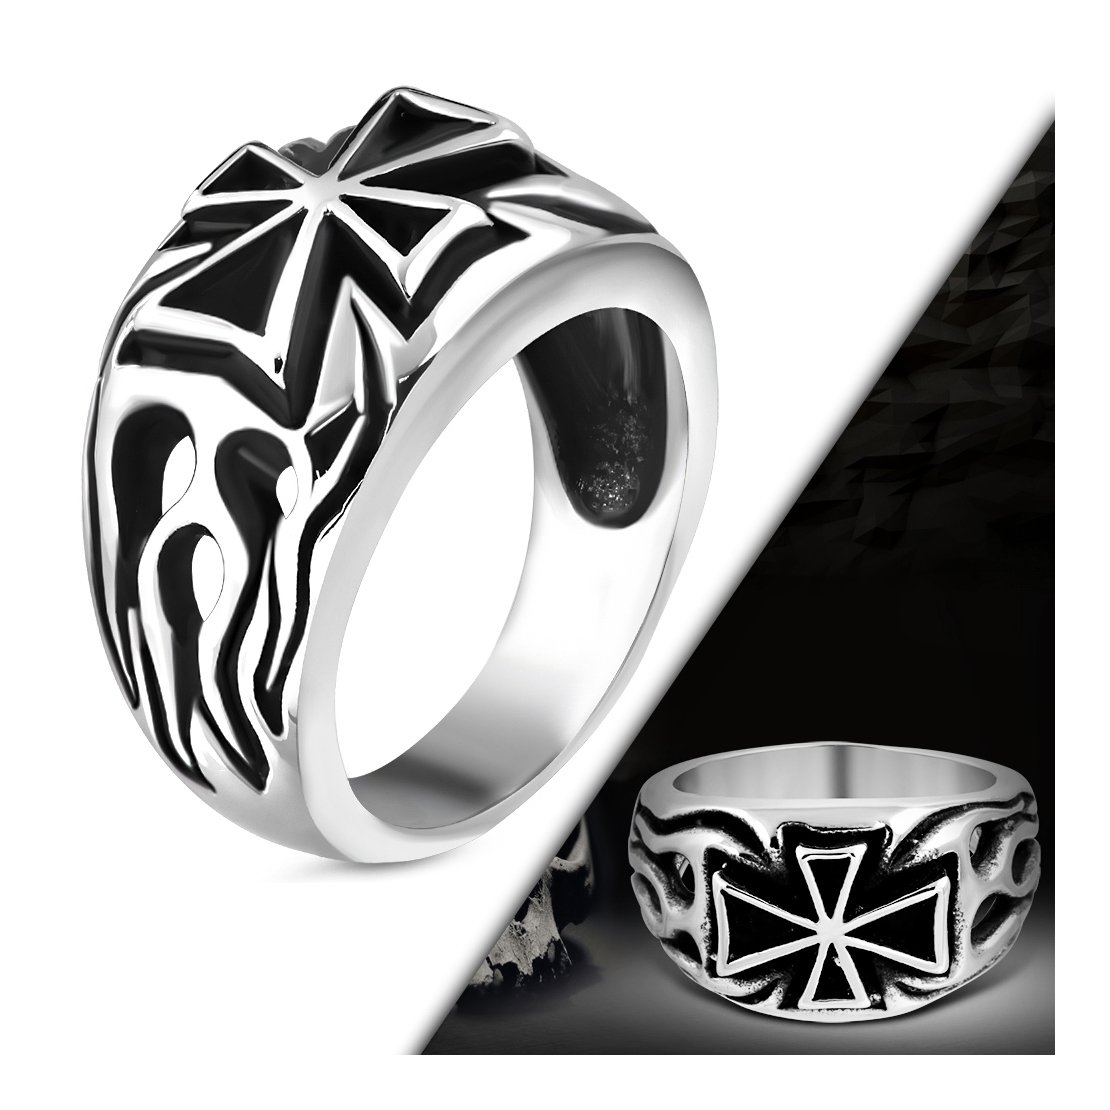 Stainless Steel 2 Color Fire// Flame Pattee Cross Biker Ring